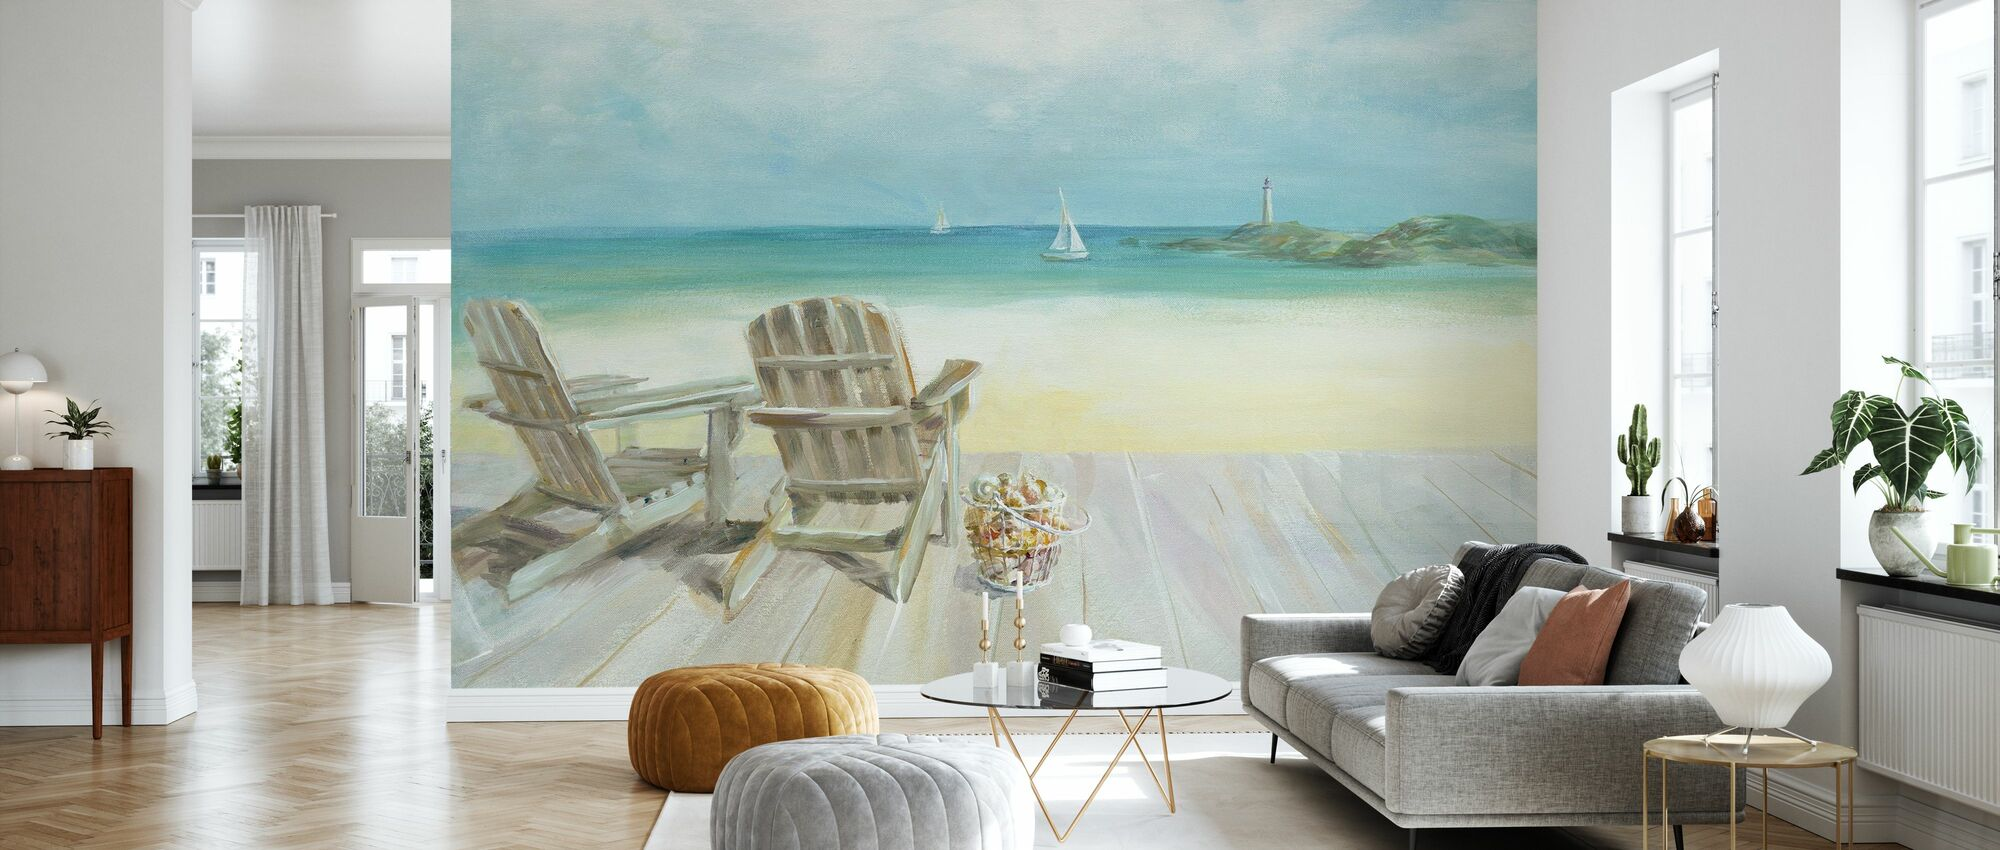 Ocean View - Wallpaper - Living Room